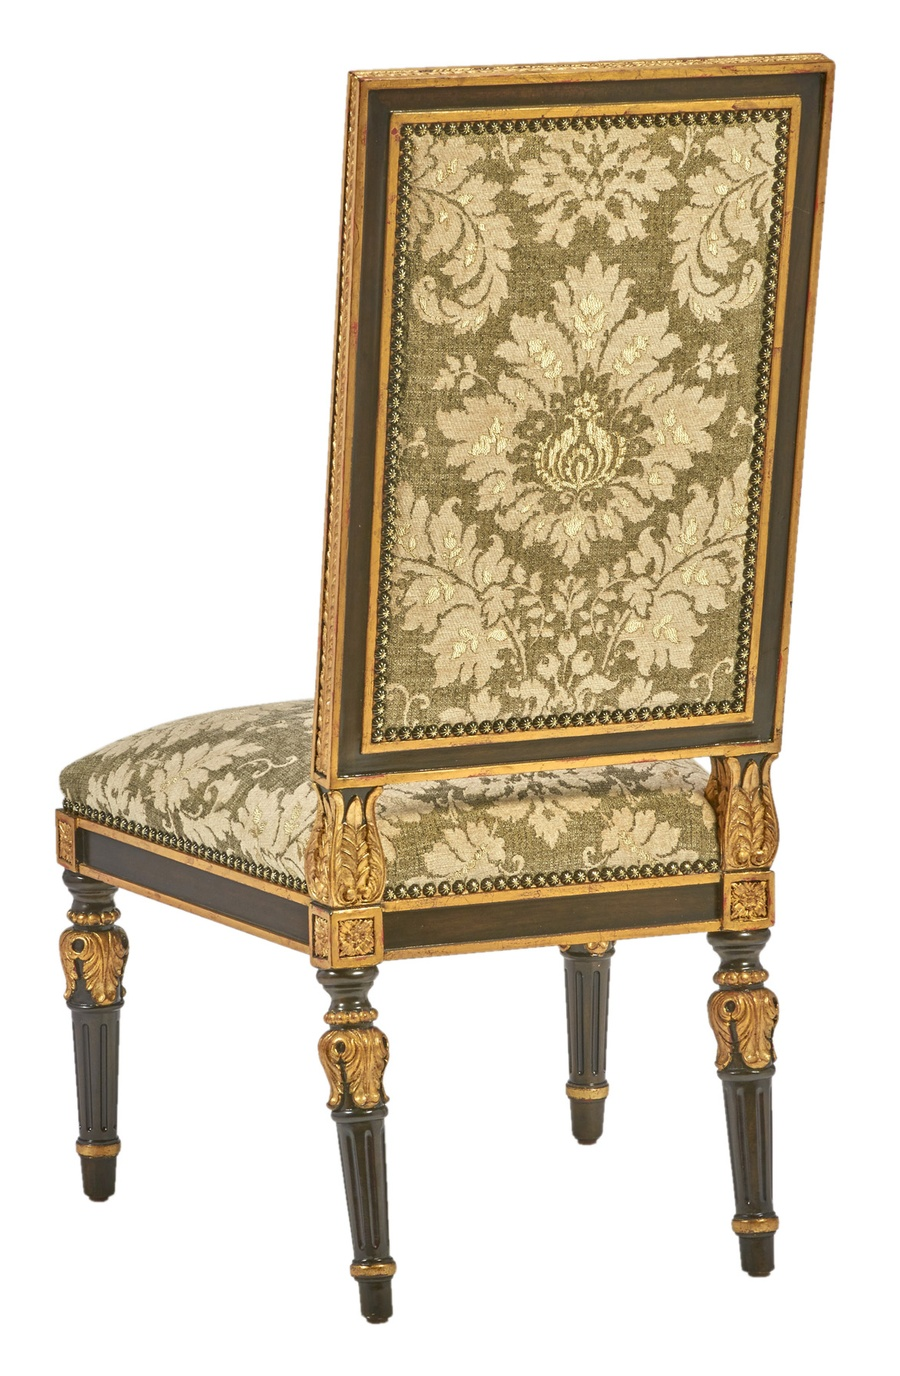 Grand Traditions Side Chair shown with:Bombay finishVenetian Gold Leaf finish trimBronze Star nailhead trim